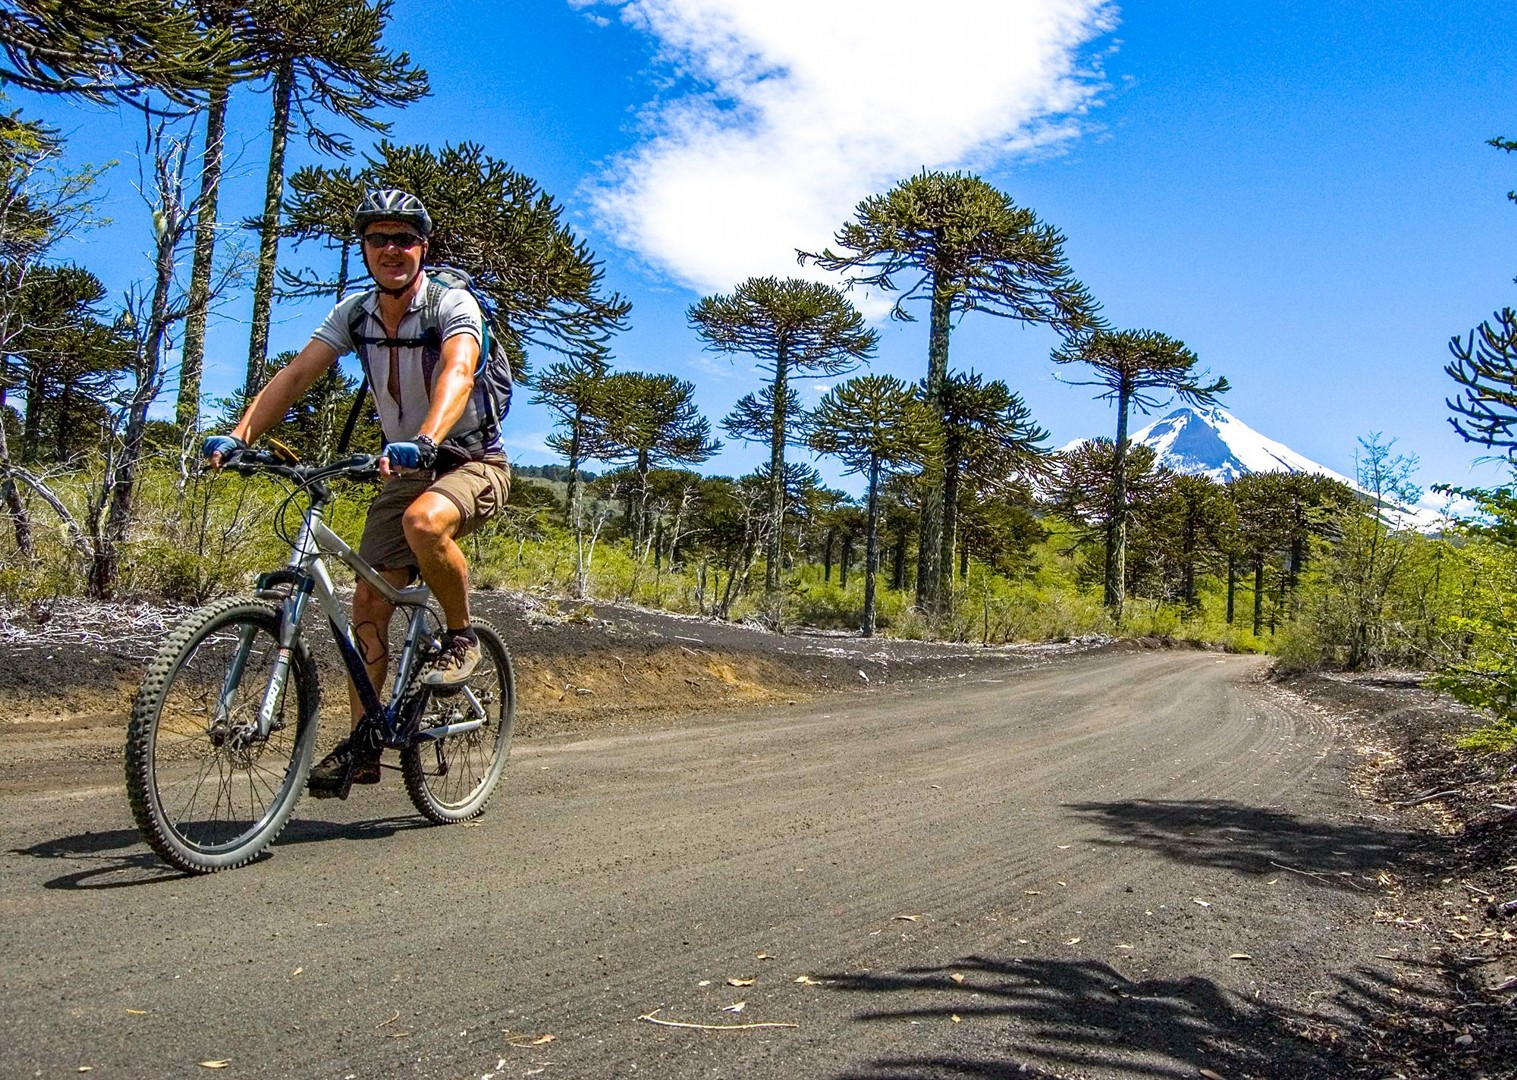 dfssdfsdf.jpg - Chile and Argentina - Lake District - Cycling Adventures